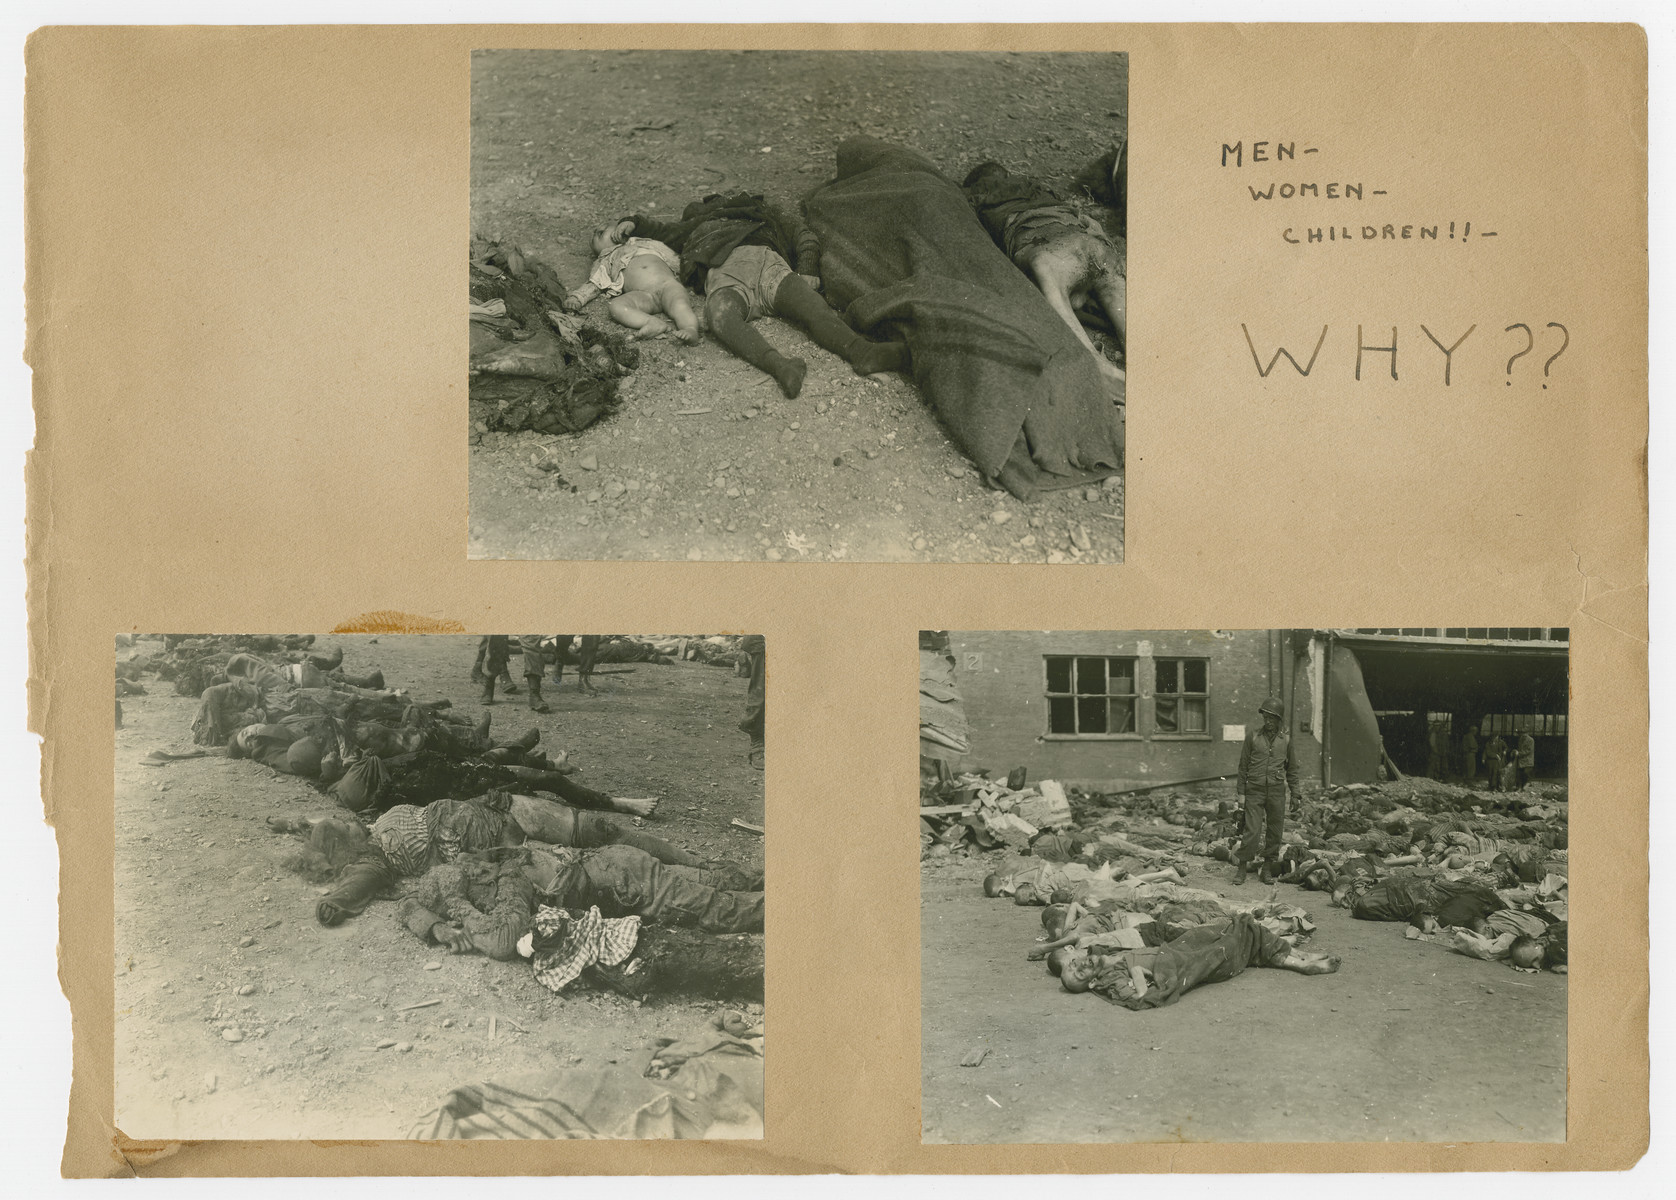 """Photographs of the corpses of men, women and children pasted into a photograph album titled """"Buchenwald/or a Glance at German """"Kultur"""""""" by Murray Bucher.  The page is entitled """"Why??"""""""